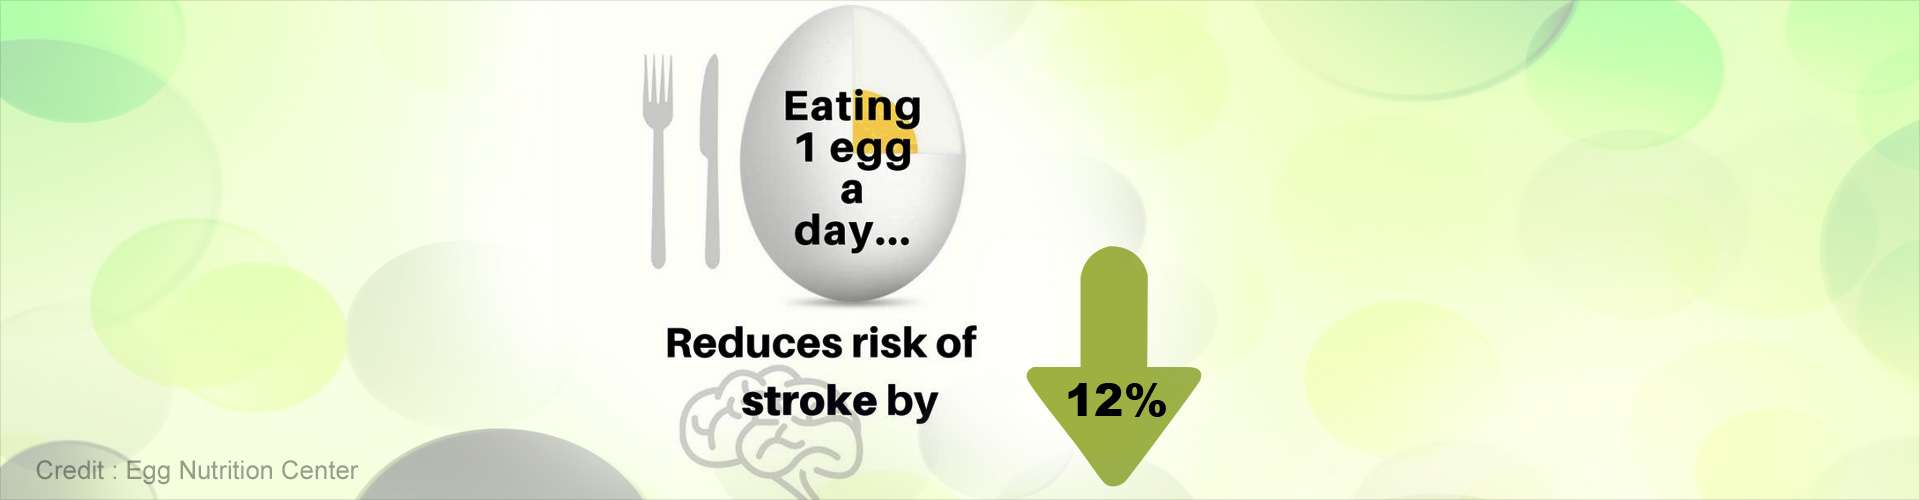 Daily Intake of Egg Reduces Stroke Risk by 12 Percent